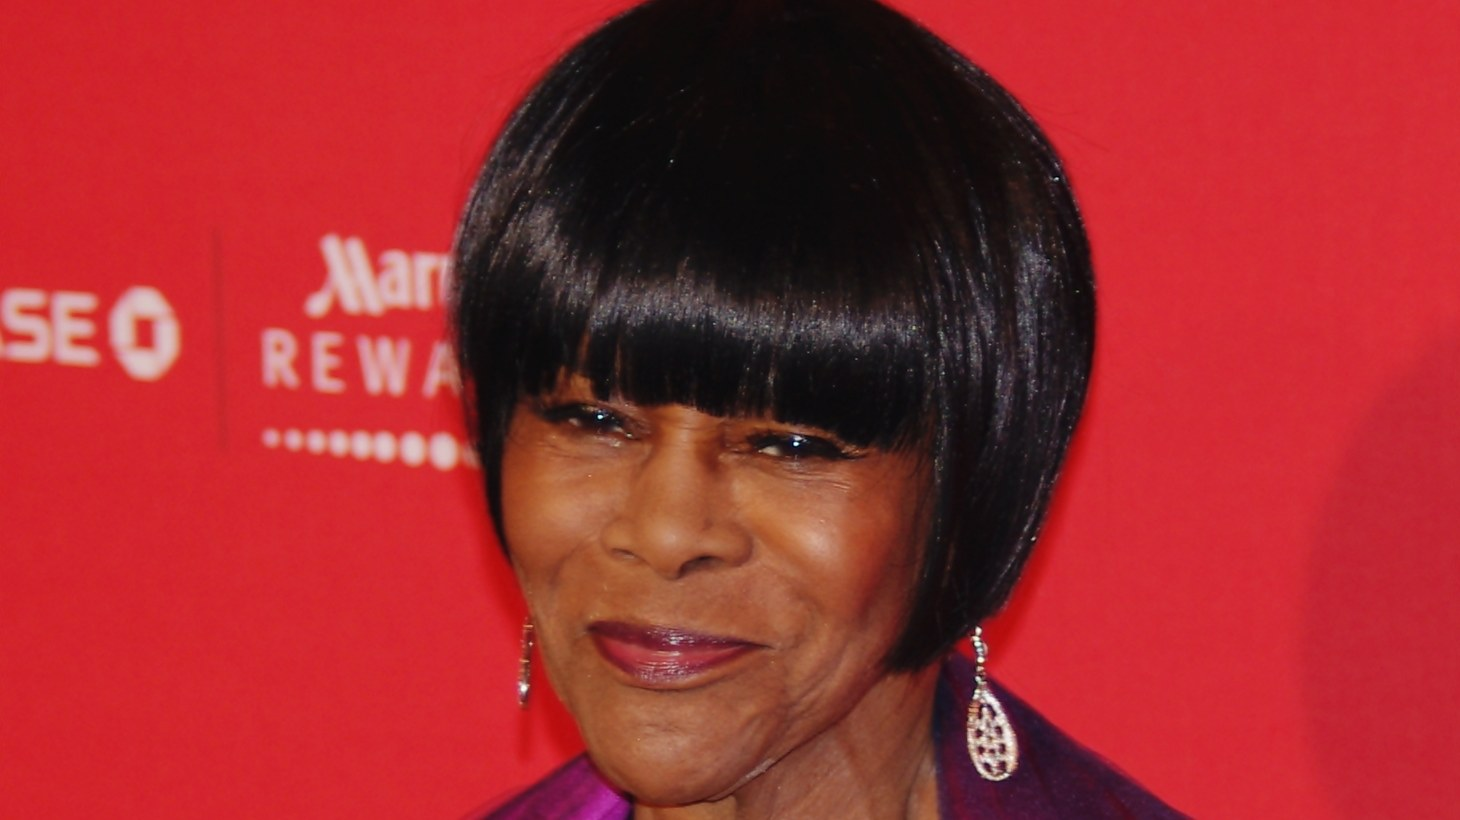 Cicely Tyson at the Time 100 gala in 2012.